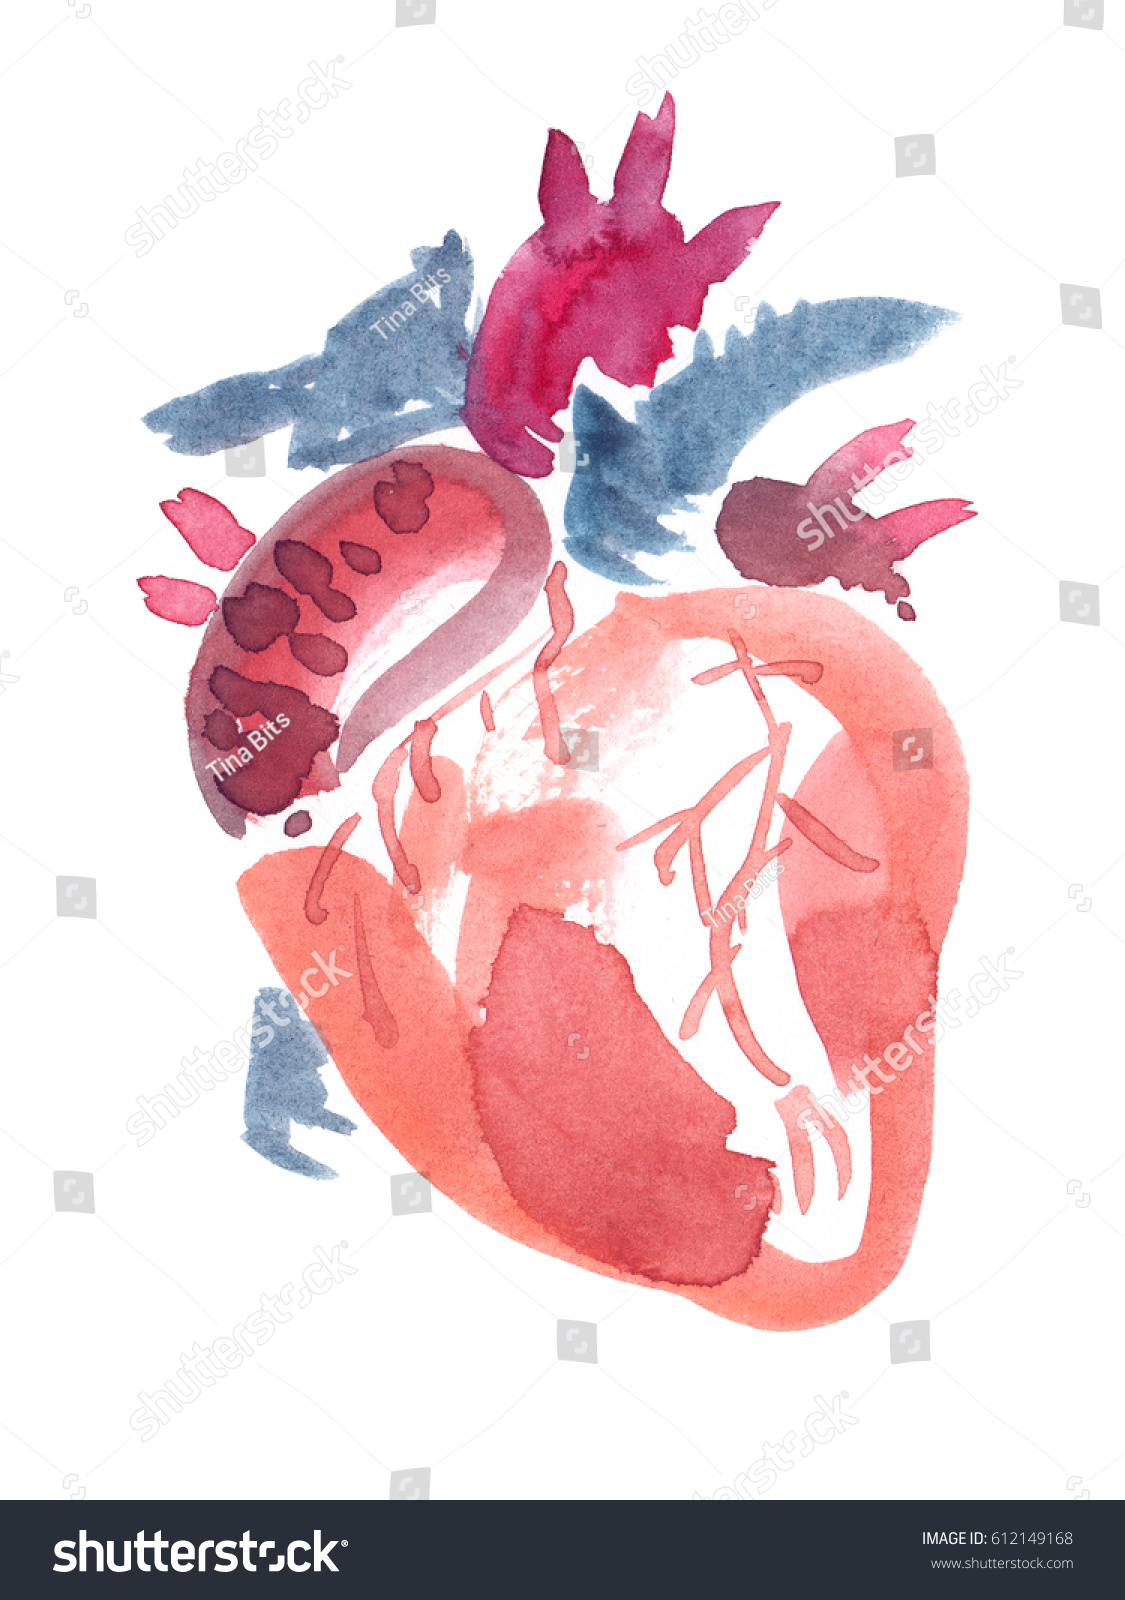 Abstract Anatomical Human Heart Painted Watercolor Stock